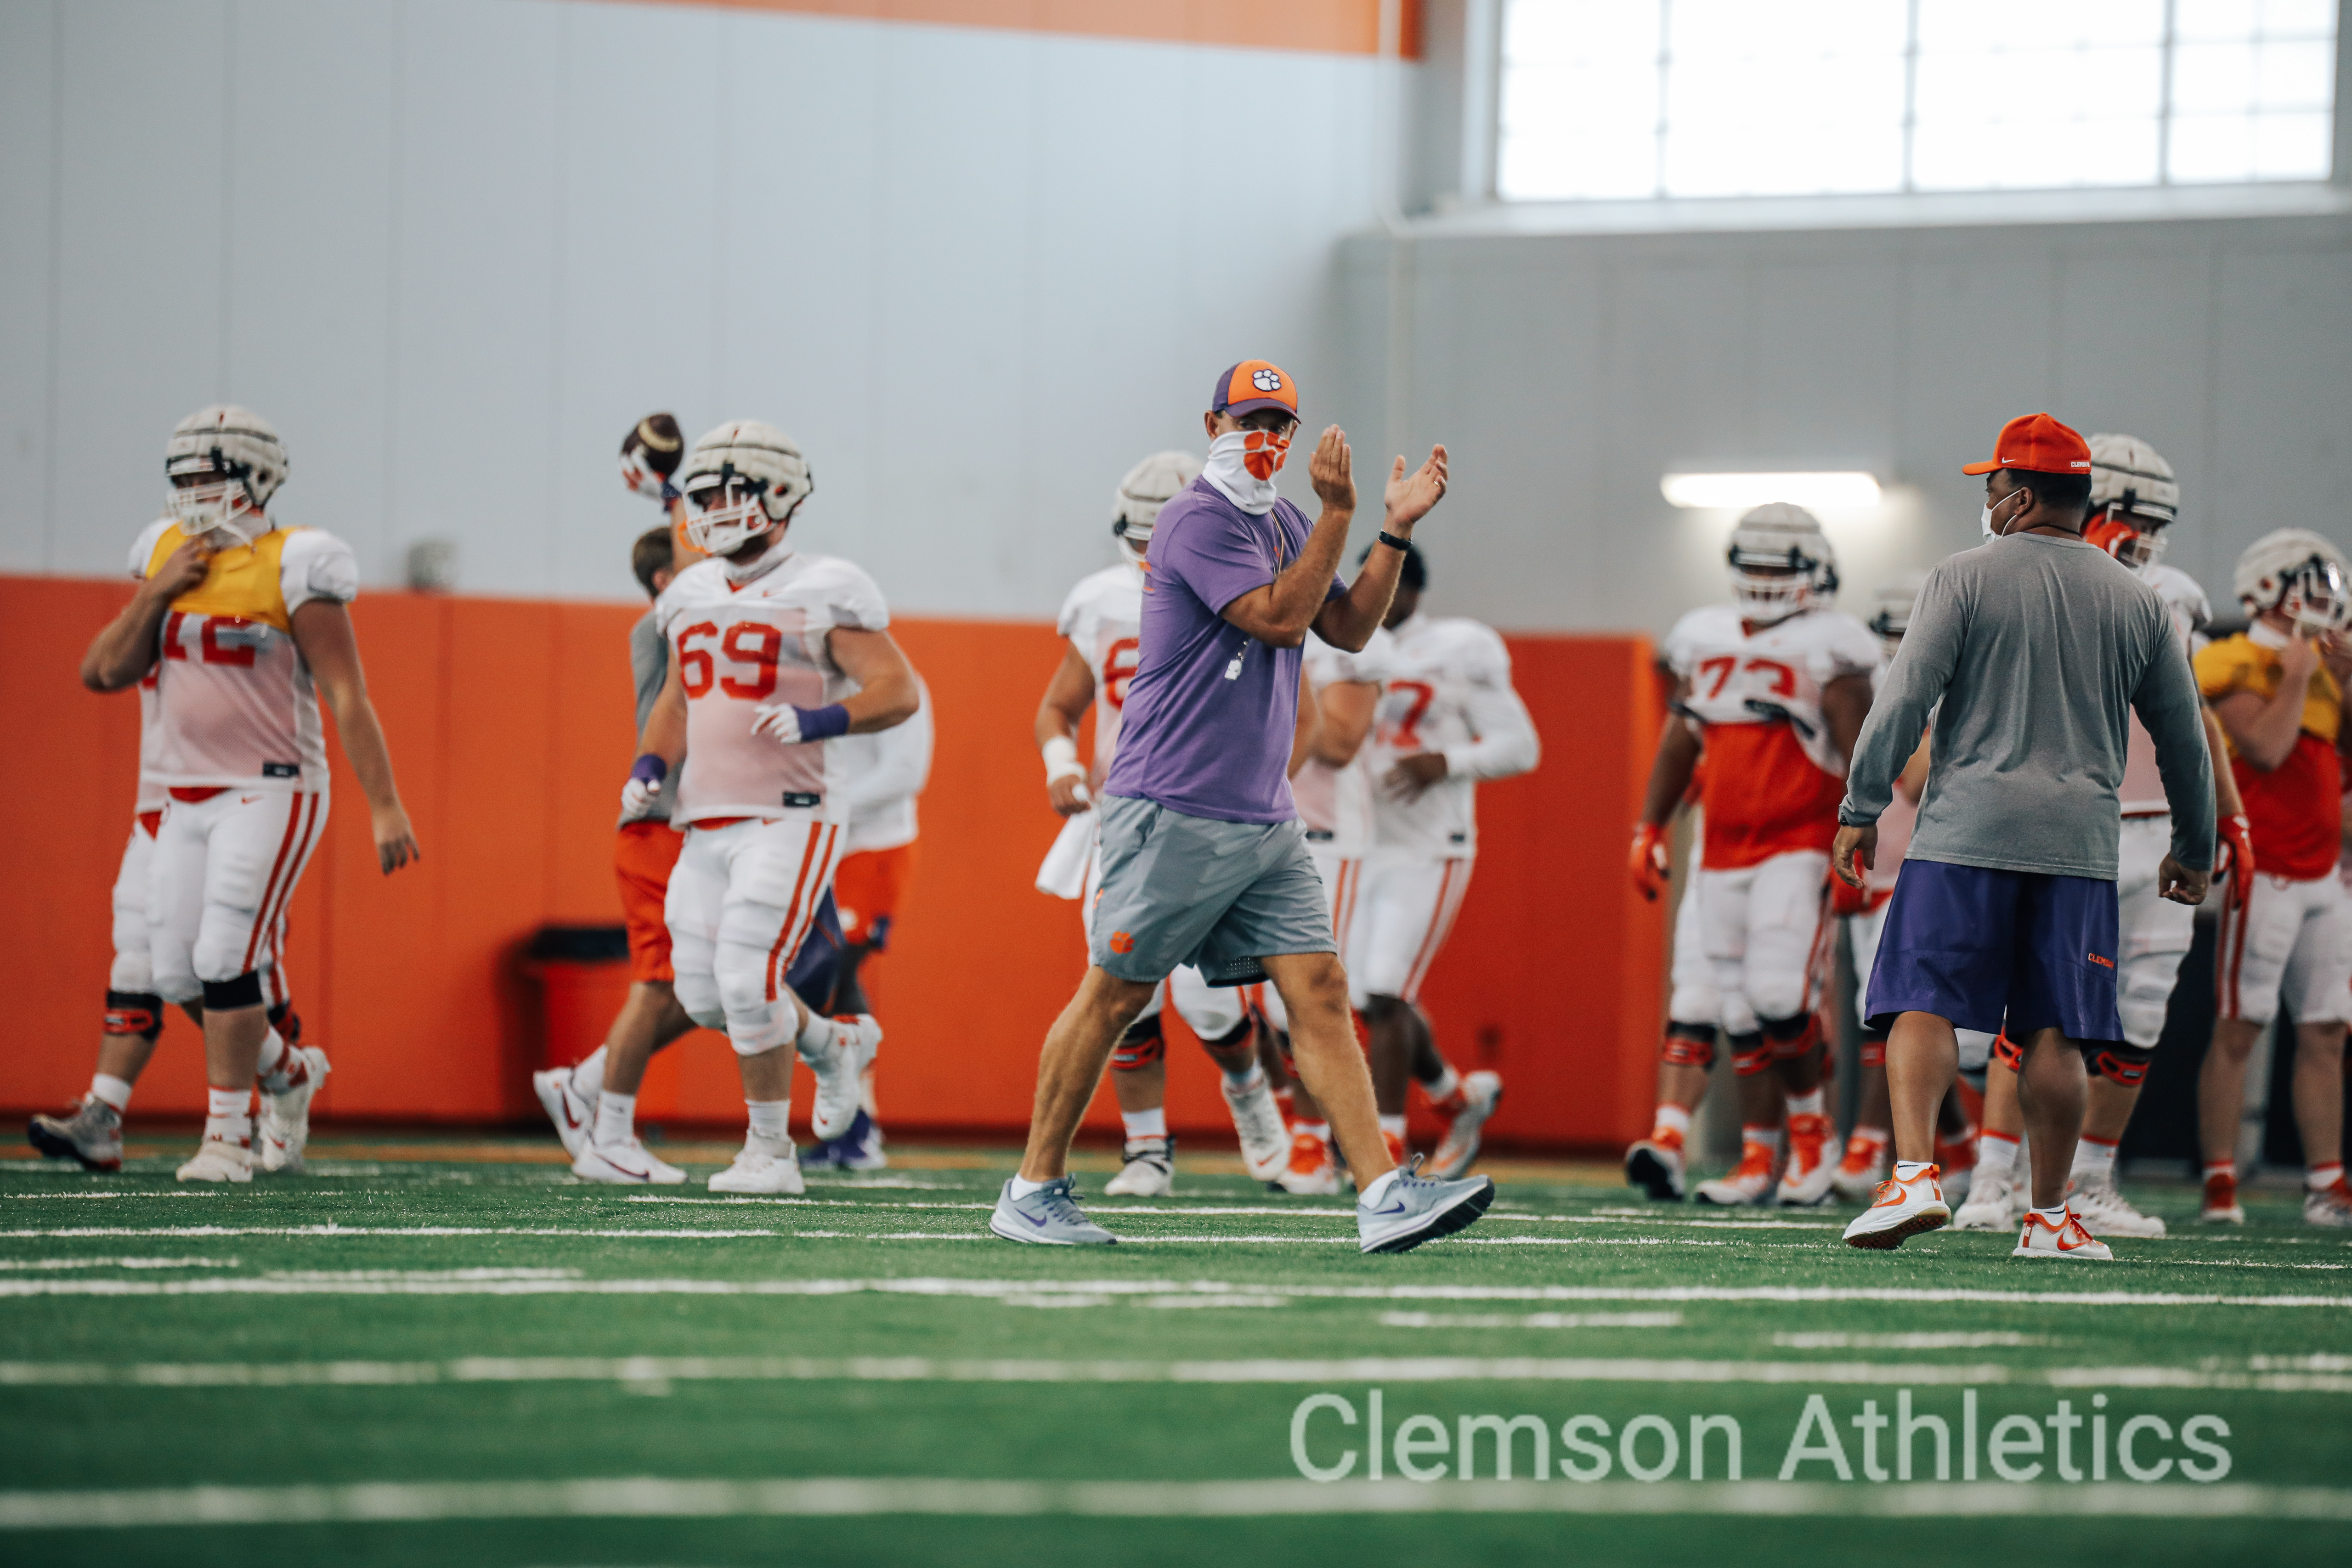 Clemson players take part in fall practice Friday, August 14, 2020. Photo courtesy Clemson Athletics